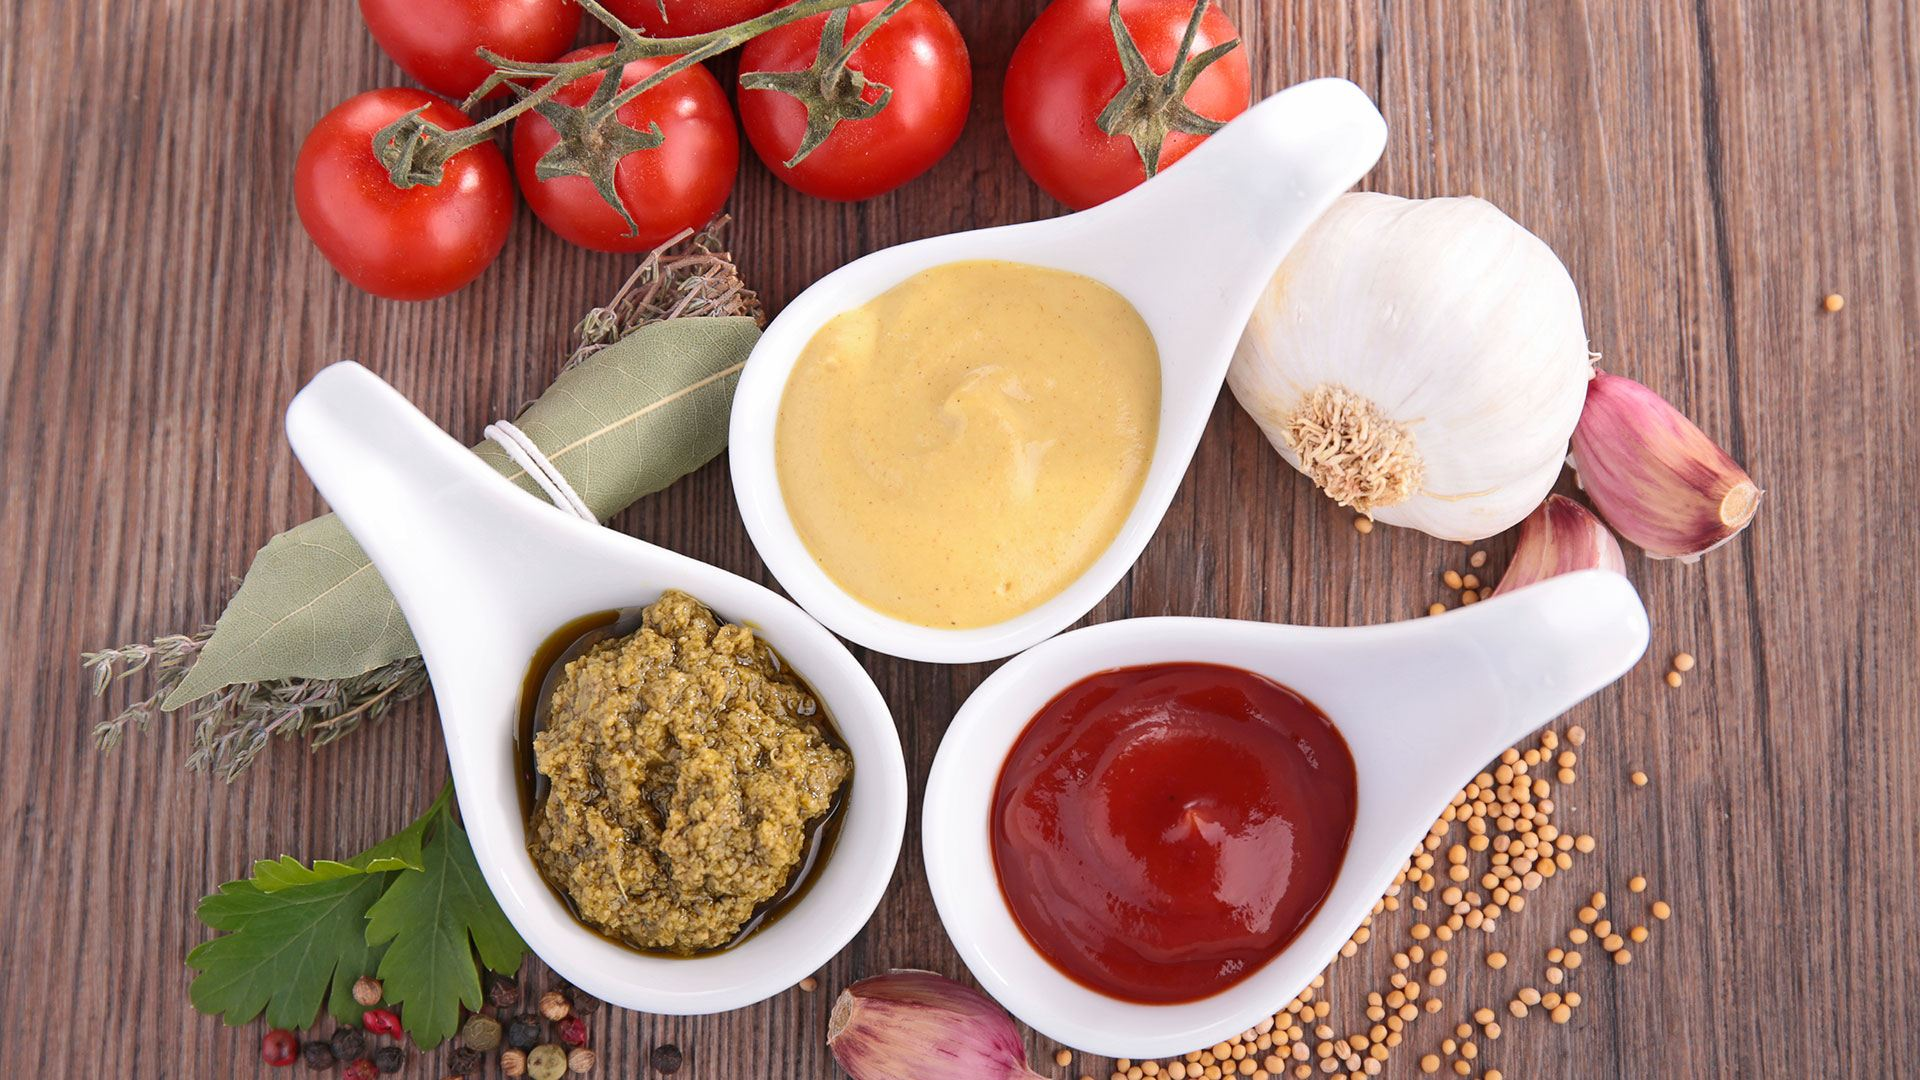 """<em><a href=""""http://mysticknots.com/3-awesome-vegetarian-diets-that-will-give-you-bountiful-of-energy-and-yet-help-you-burn-fat-at-the-same-time-3-is-a-must-try/"""">3 Awesome Vegetarian Diets that will Give You Bountiful of Energy and Yet Help You Burn Fat at the Same Time! #3 is a Must Try!-Vegetarian Condiments</a></em>"""